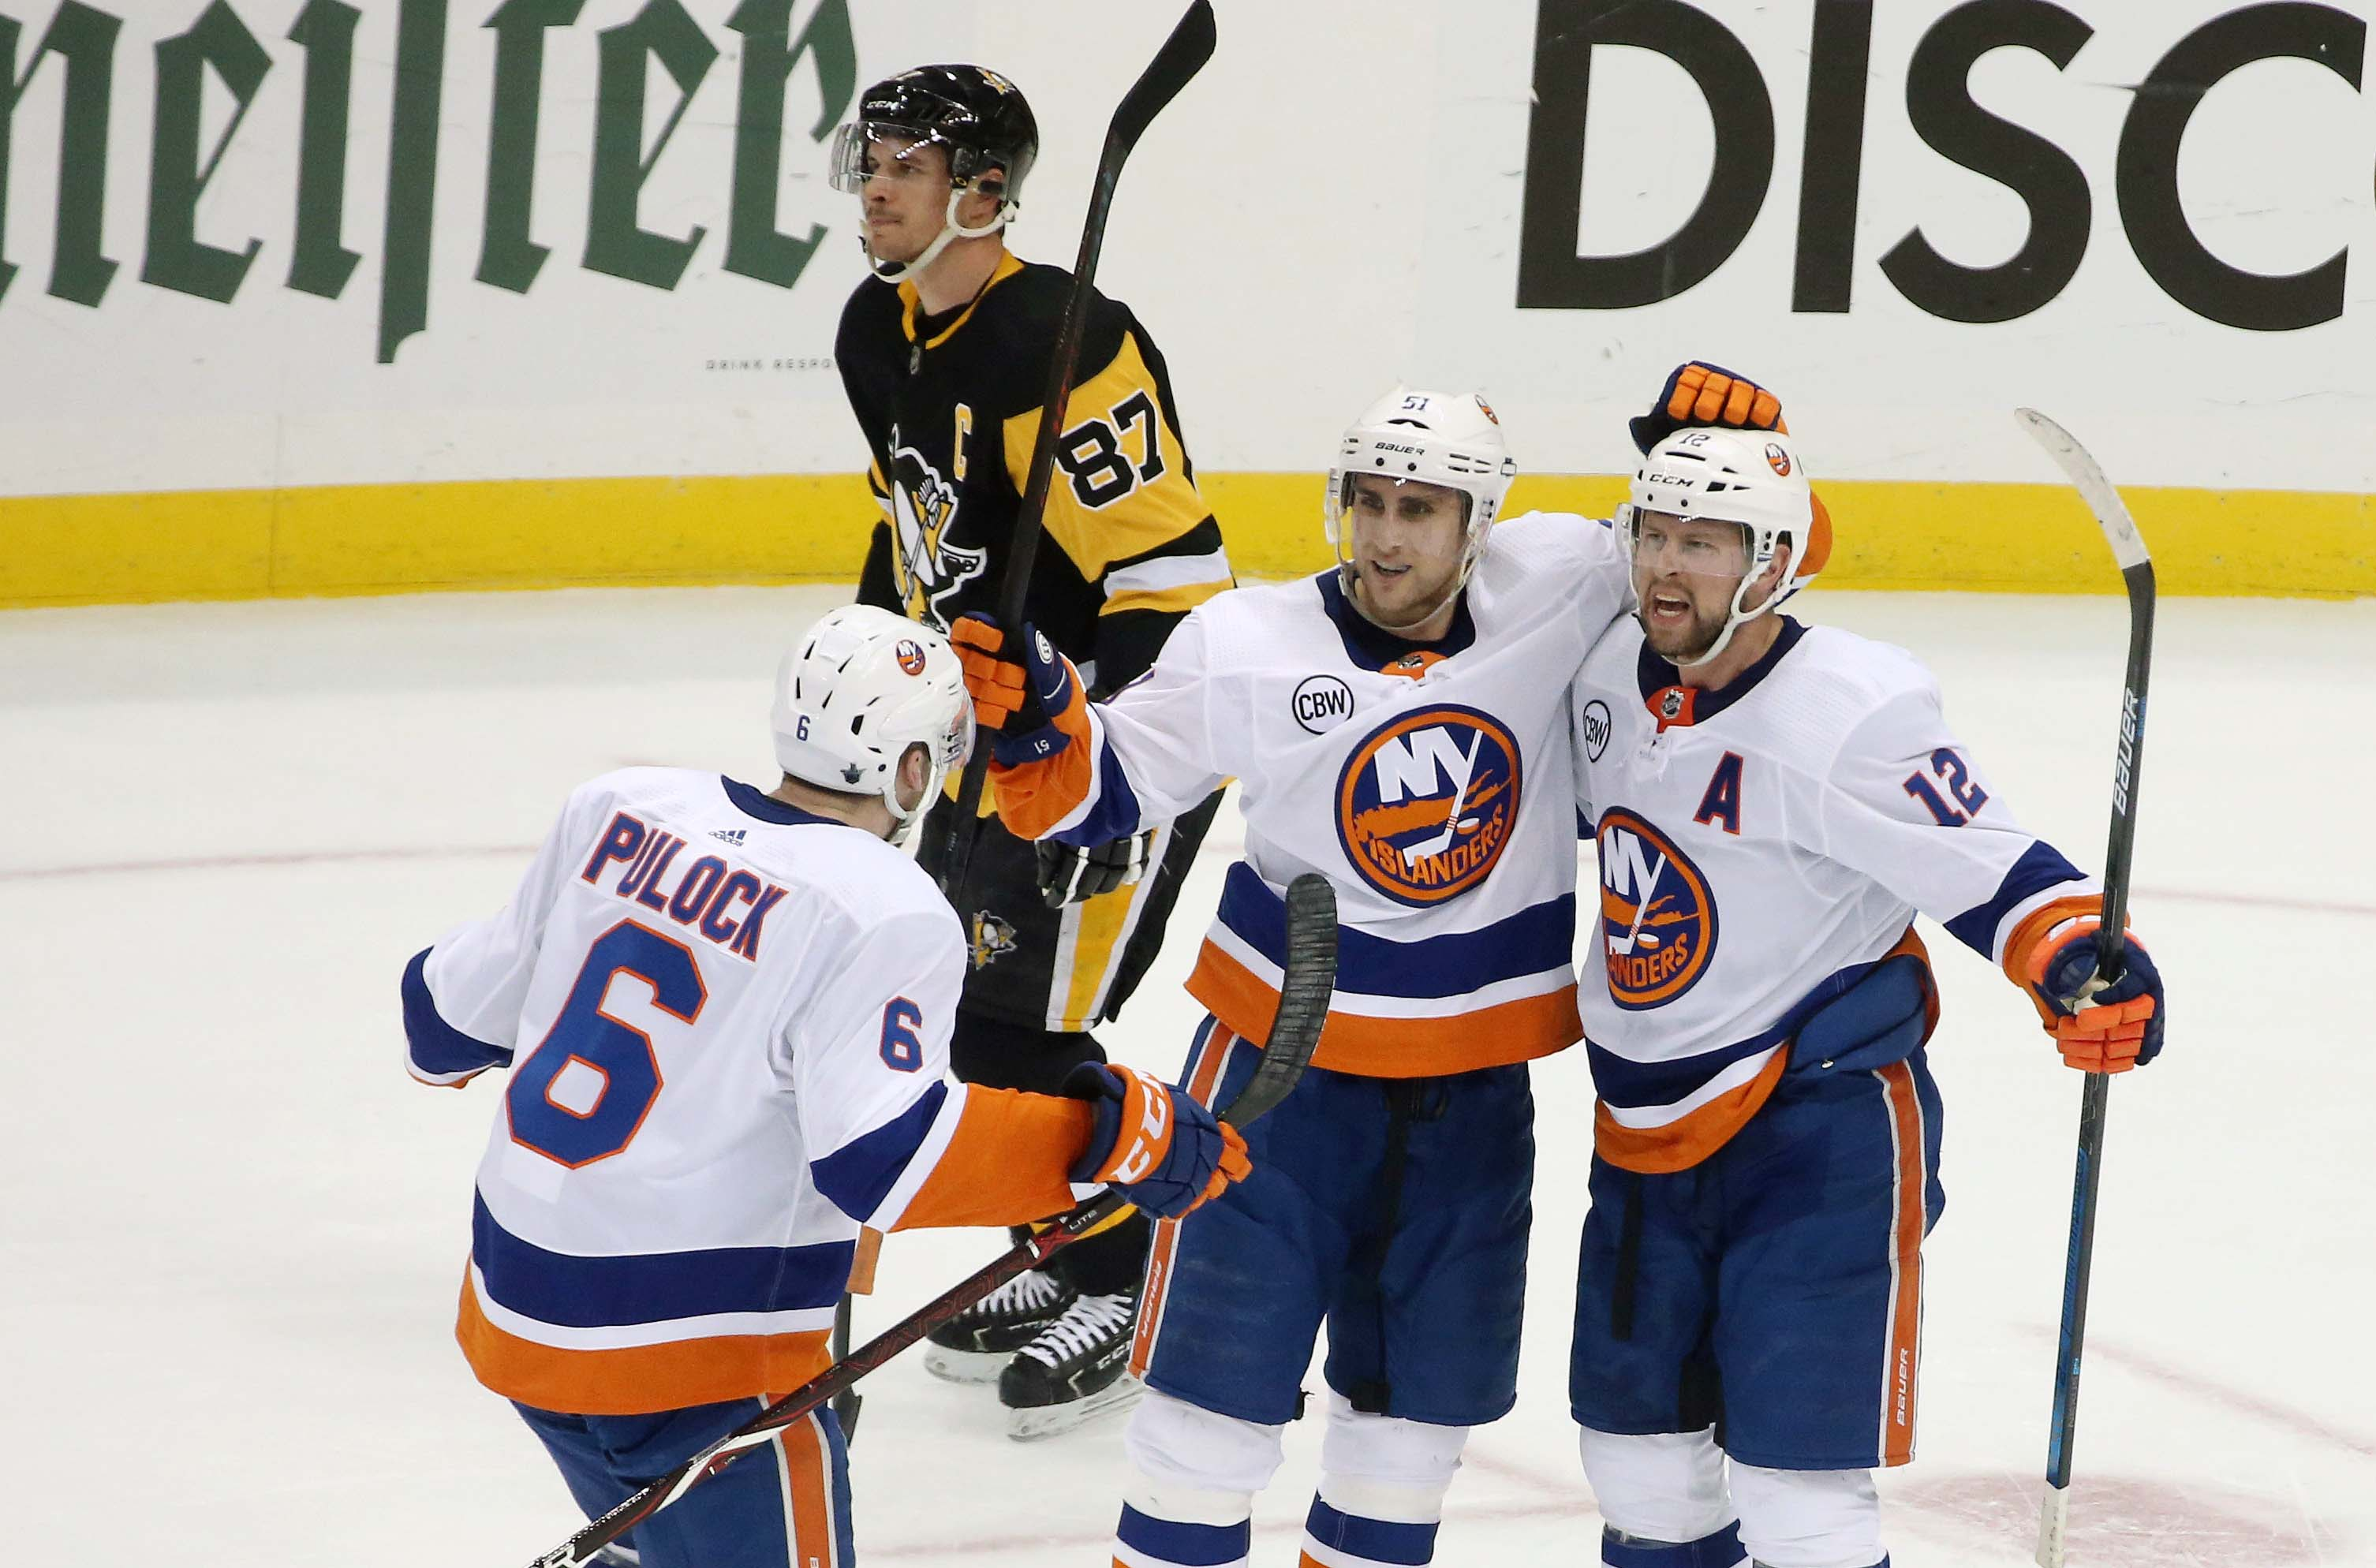 Clean Sweep: Isles defeat Pens 3-1 to advance to second round